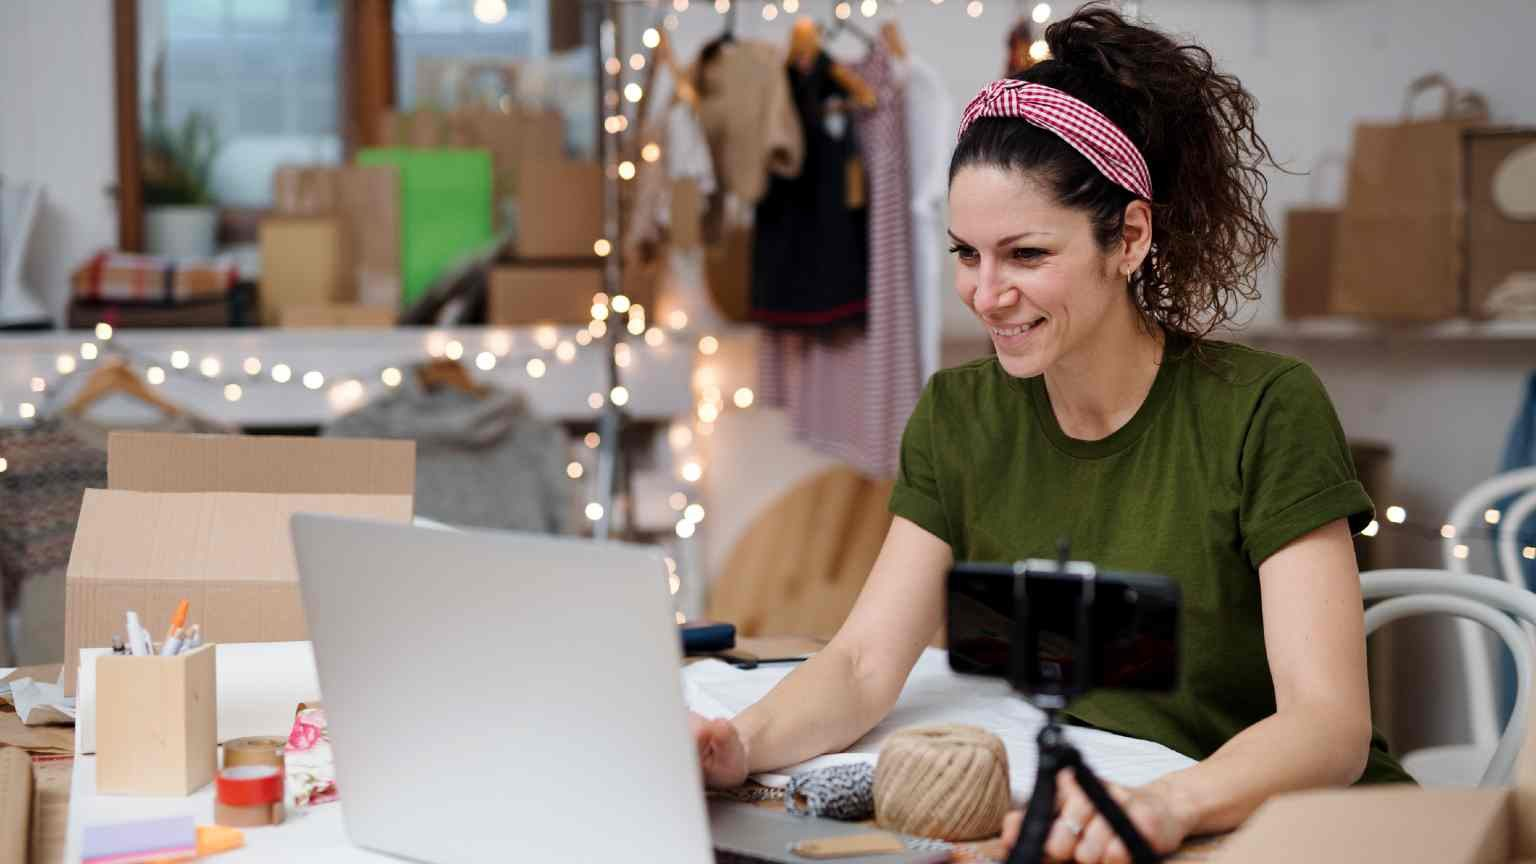 Woman holding and promoting handbag, new normal small business.